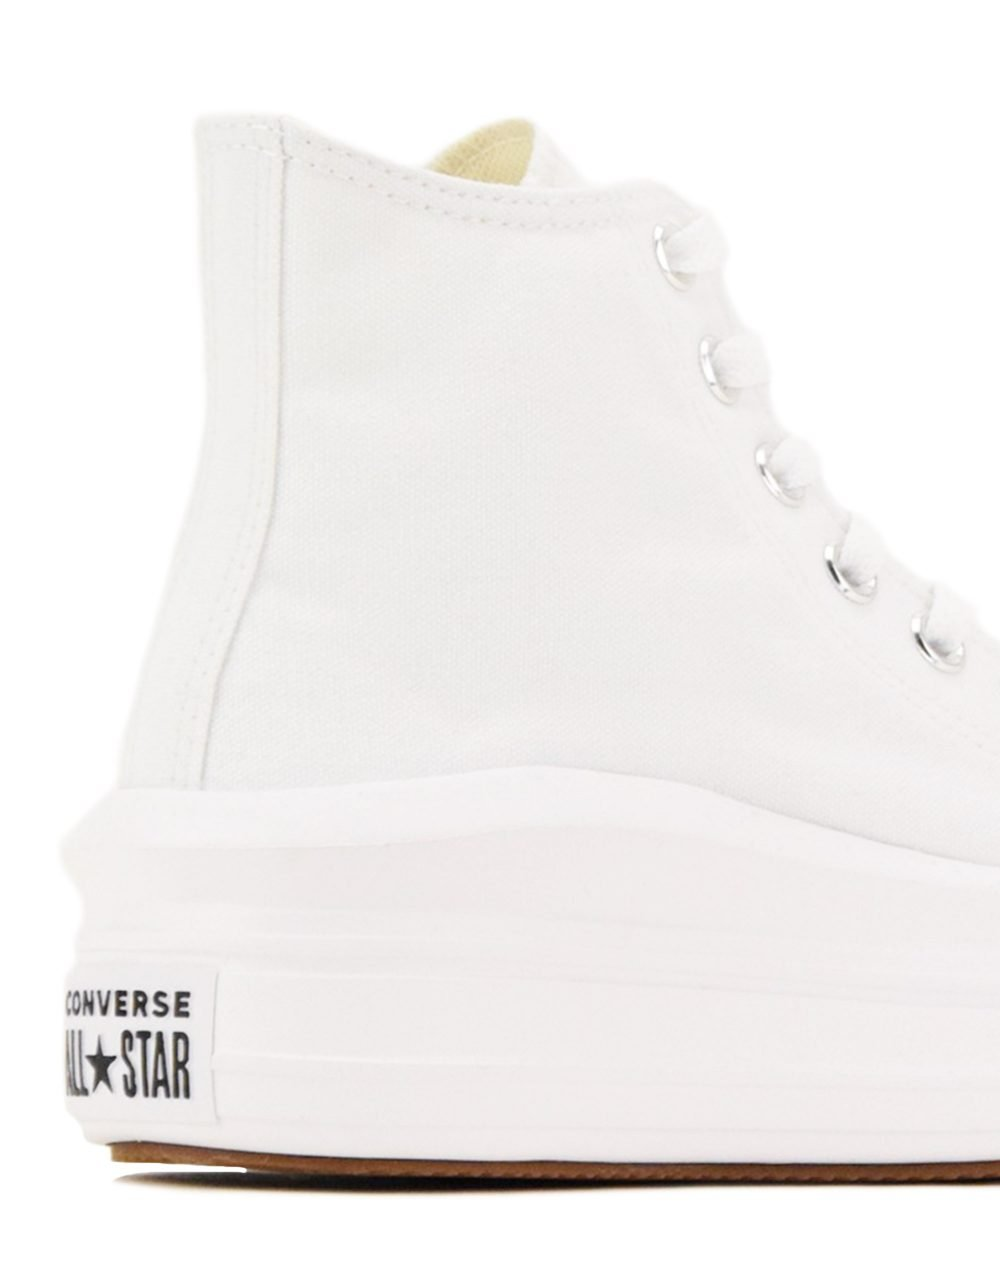 Converse Chuck Taylor All Star Move Hi Top (568498C) White/Natural Ivory/Black